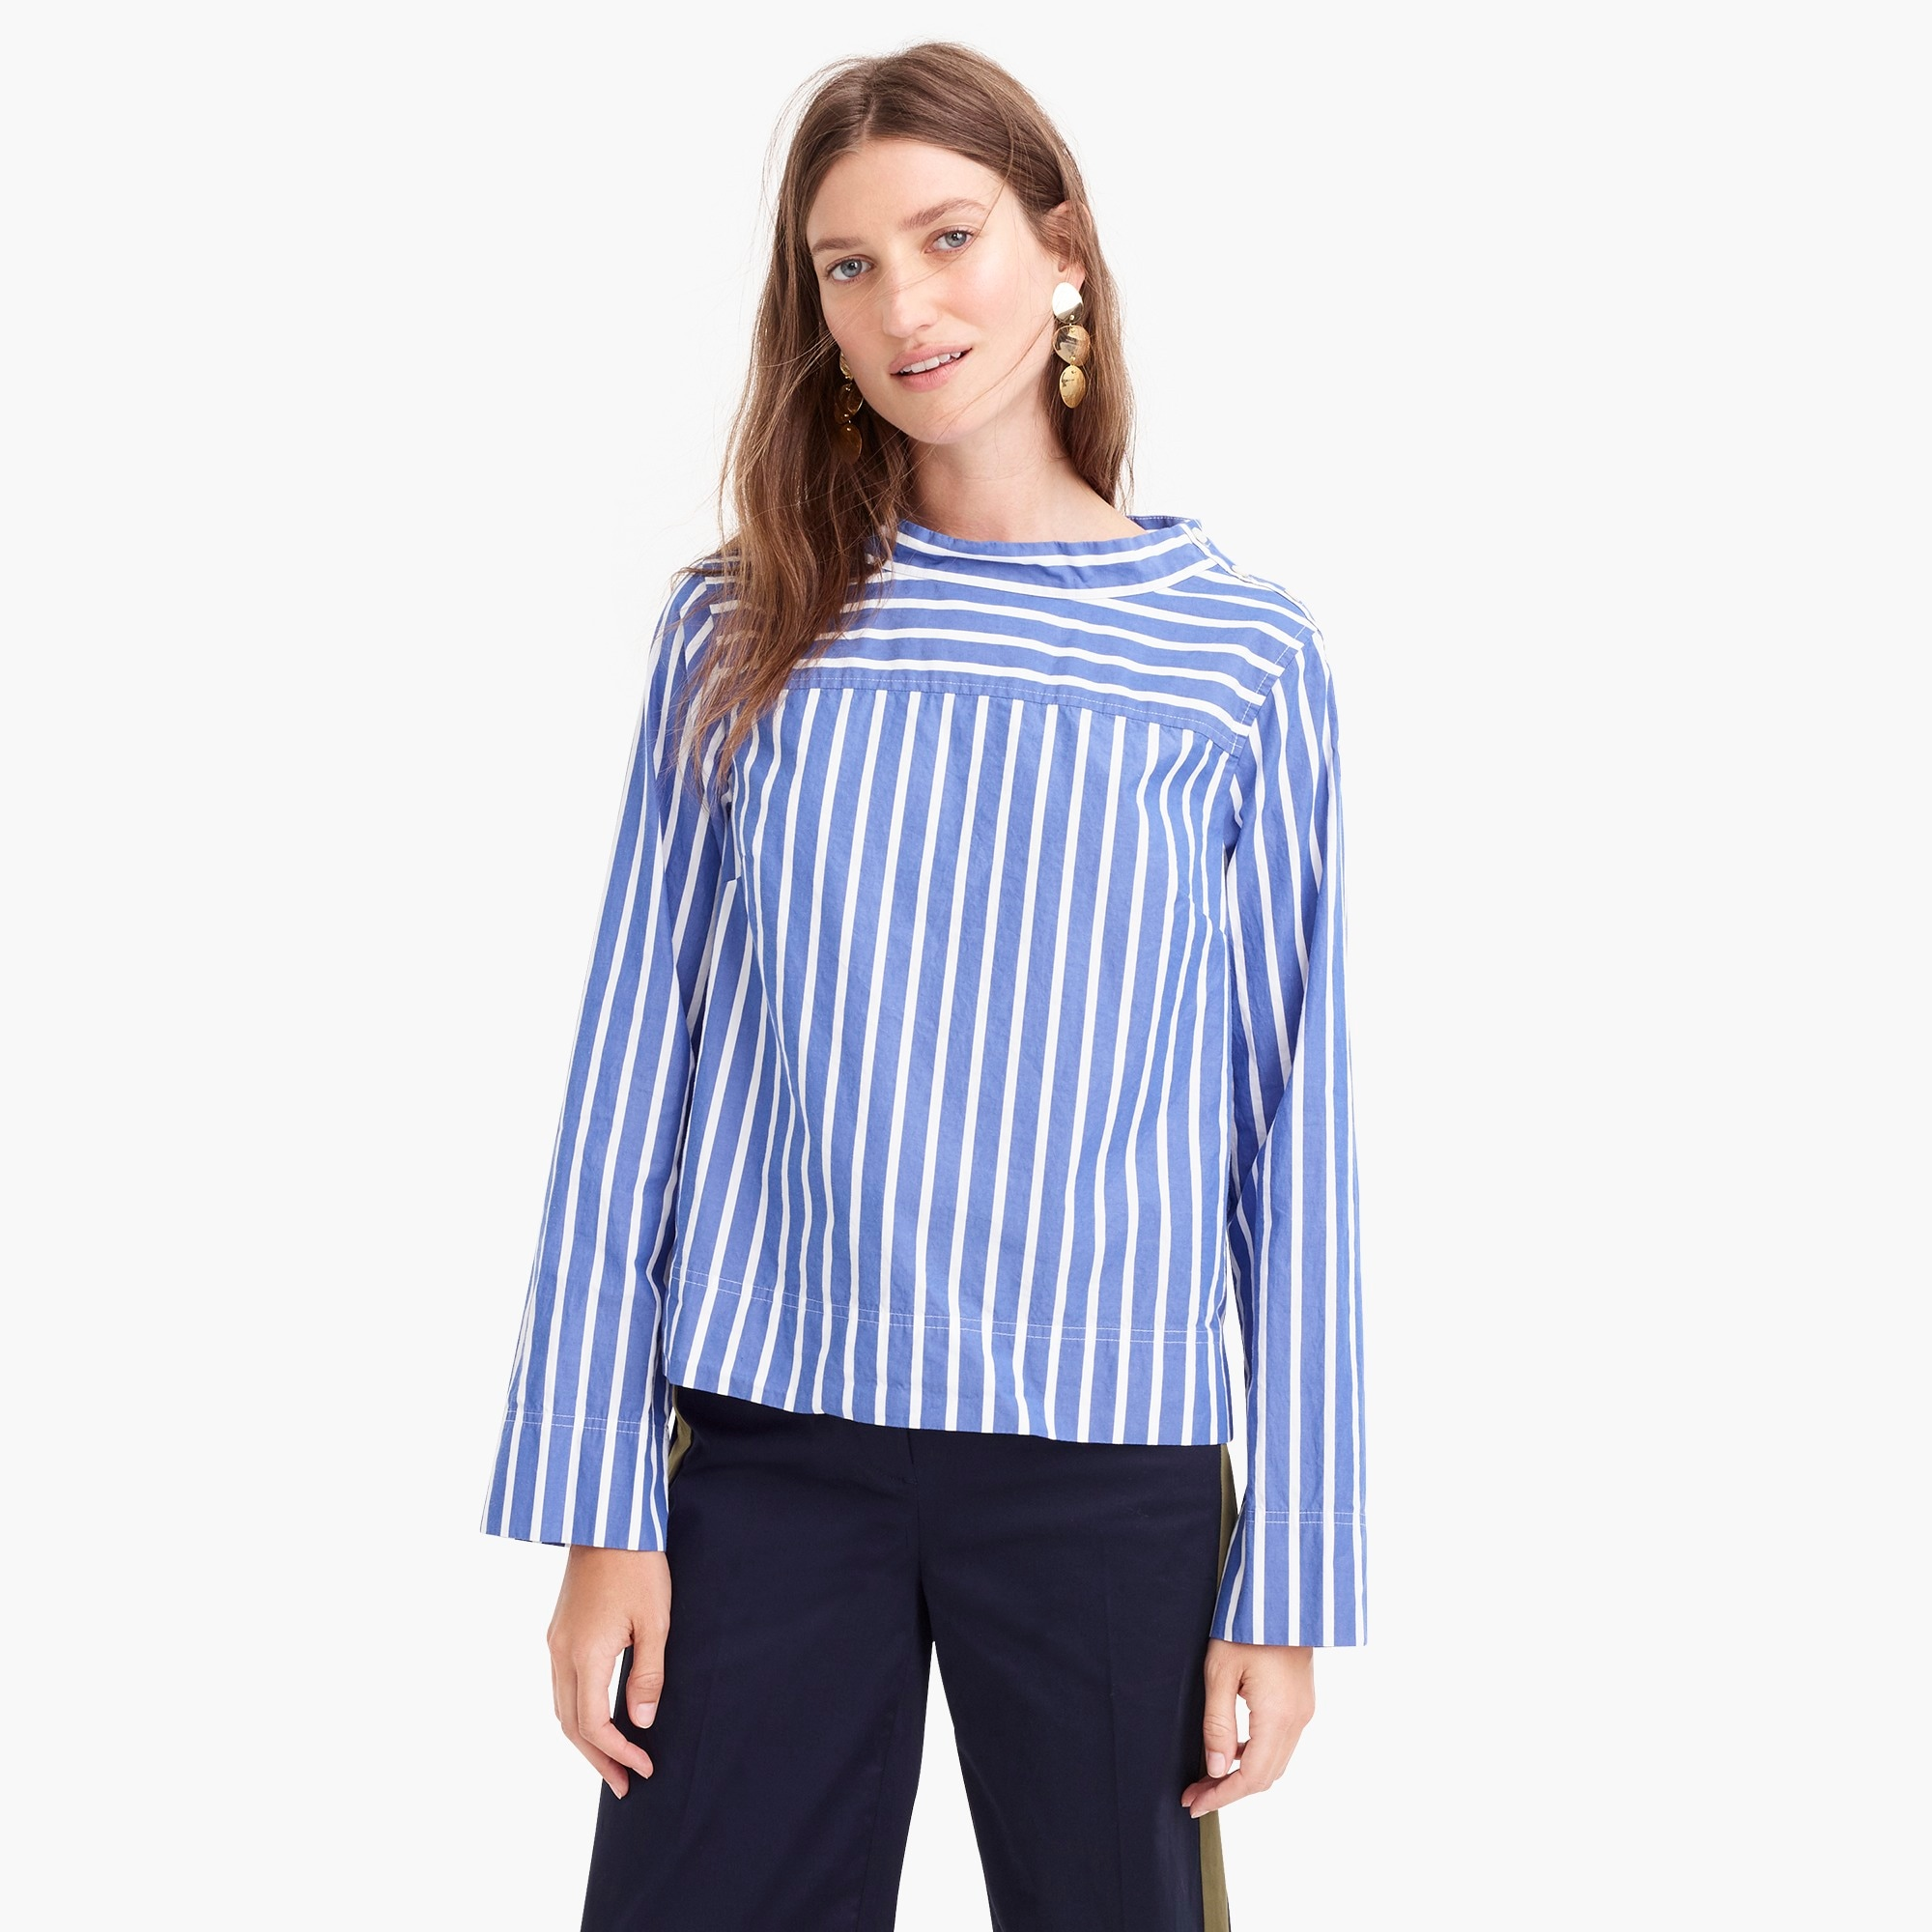 Tall funnelneck striped shirt